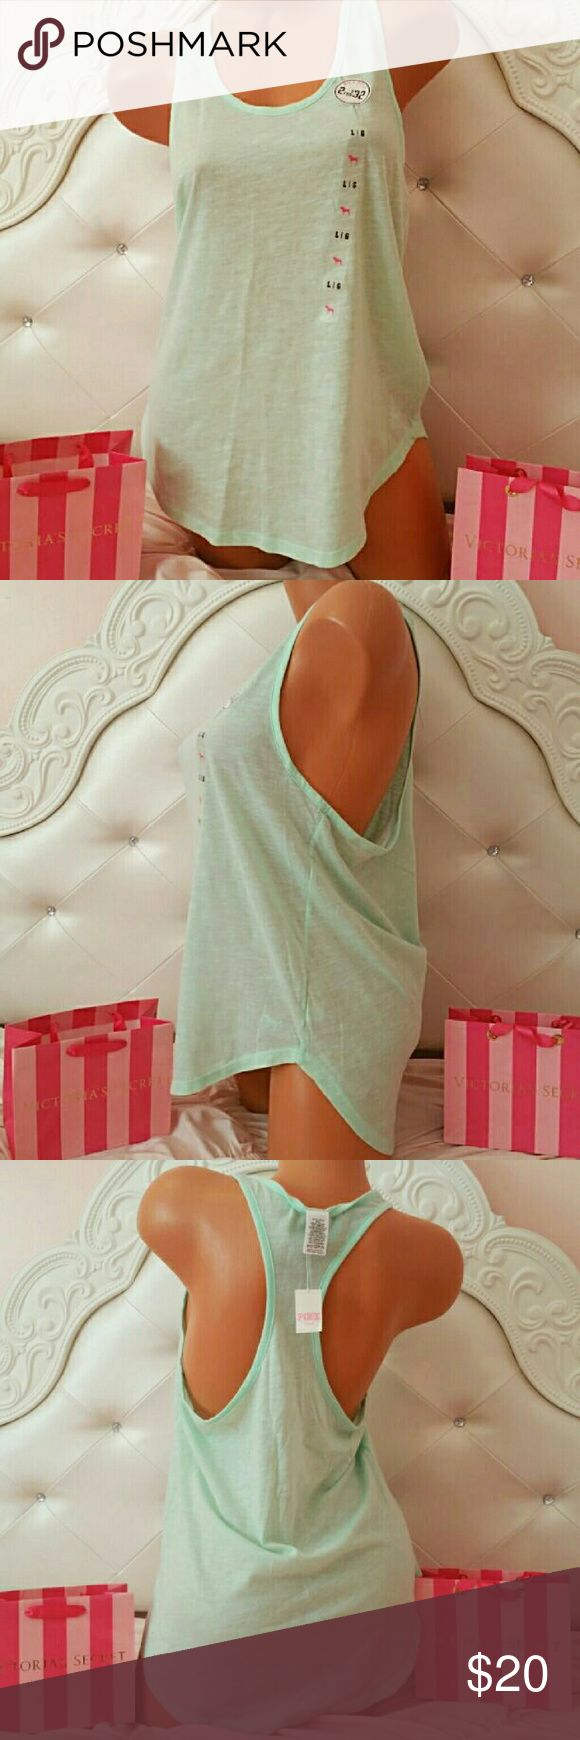 NWT PINK by VS mint green tank top size large New with tags PINK by victorias secret mint green tank top size large PINK Victoria's Secret Tops Tank Tops